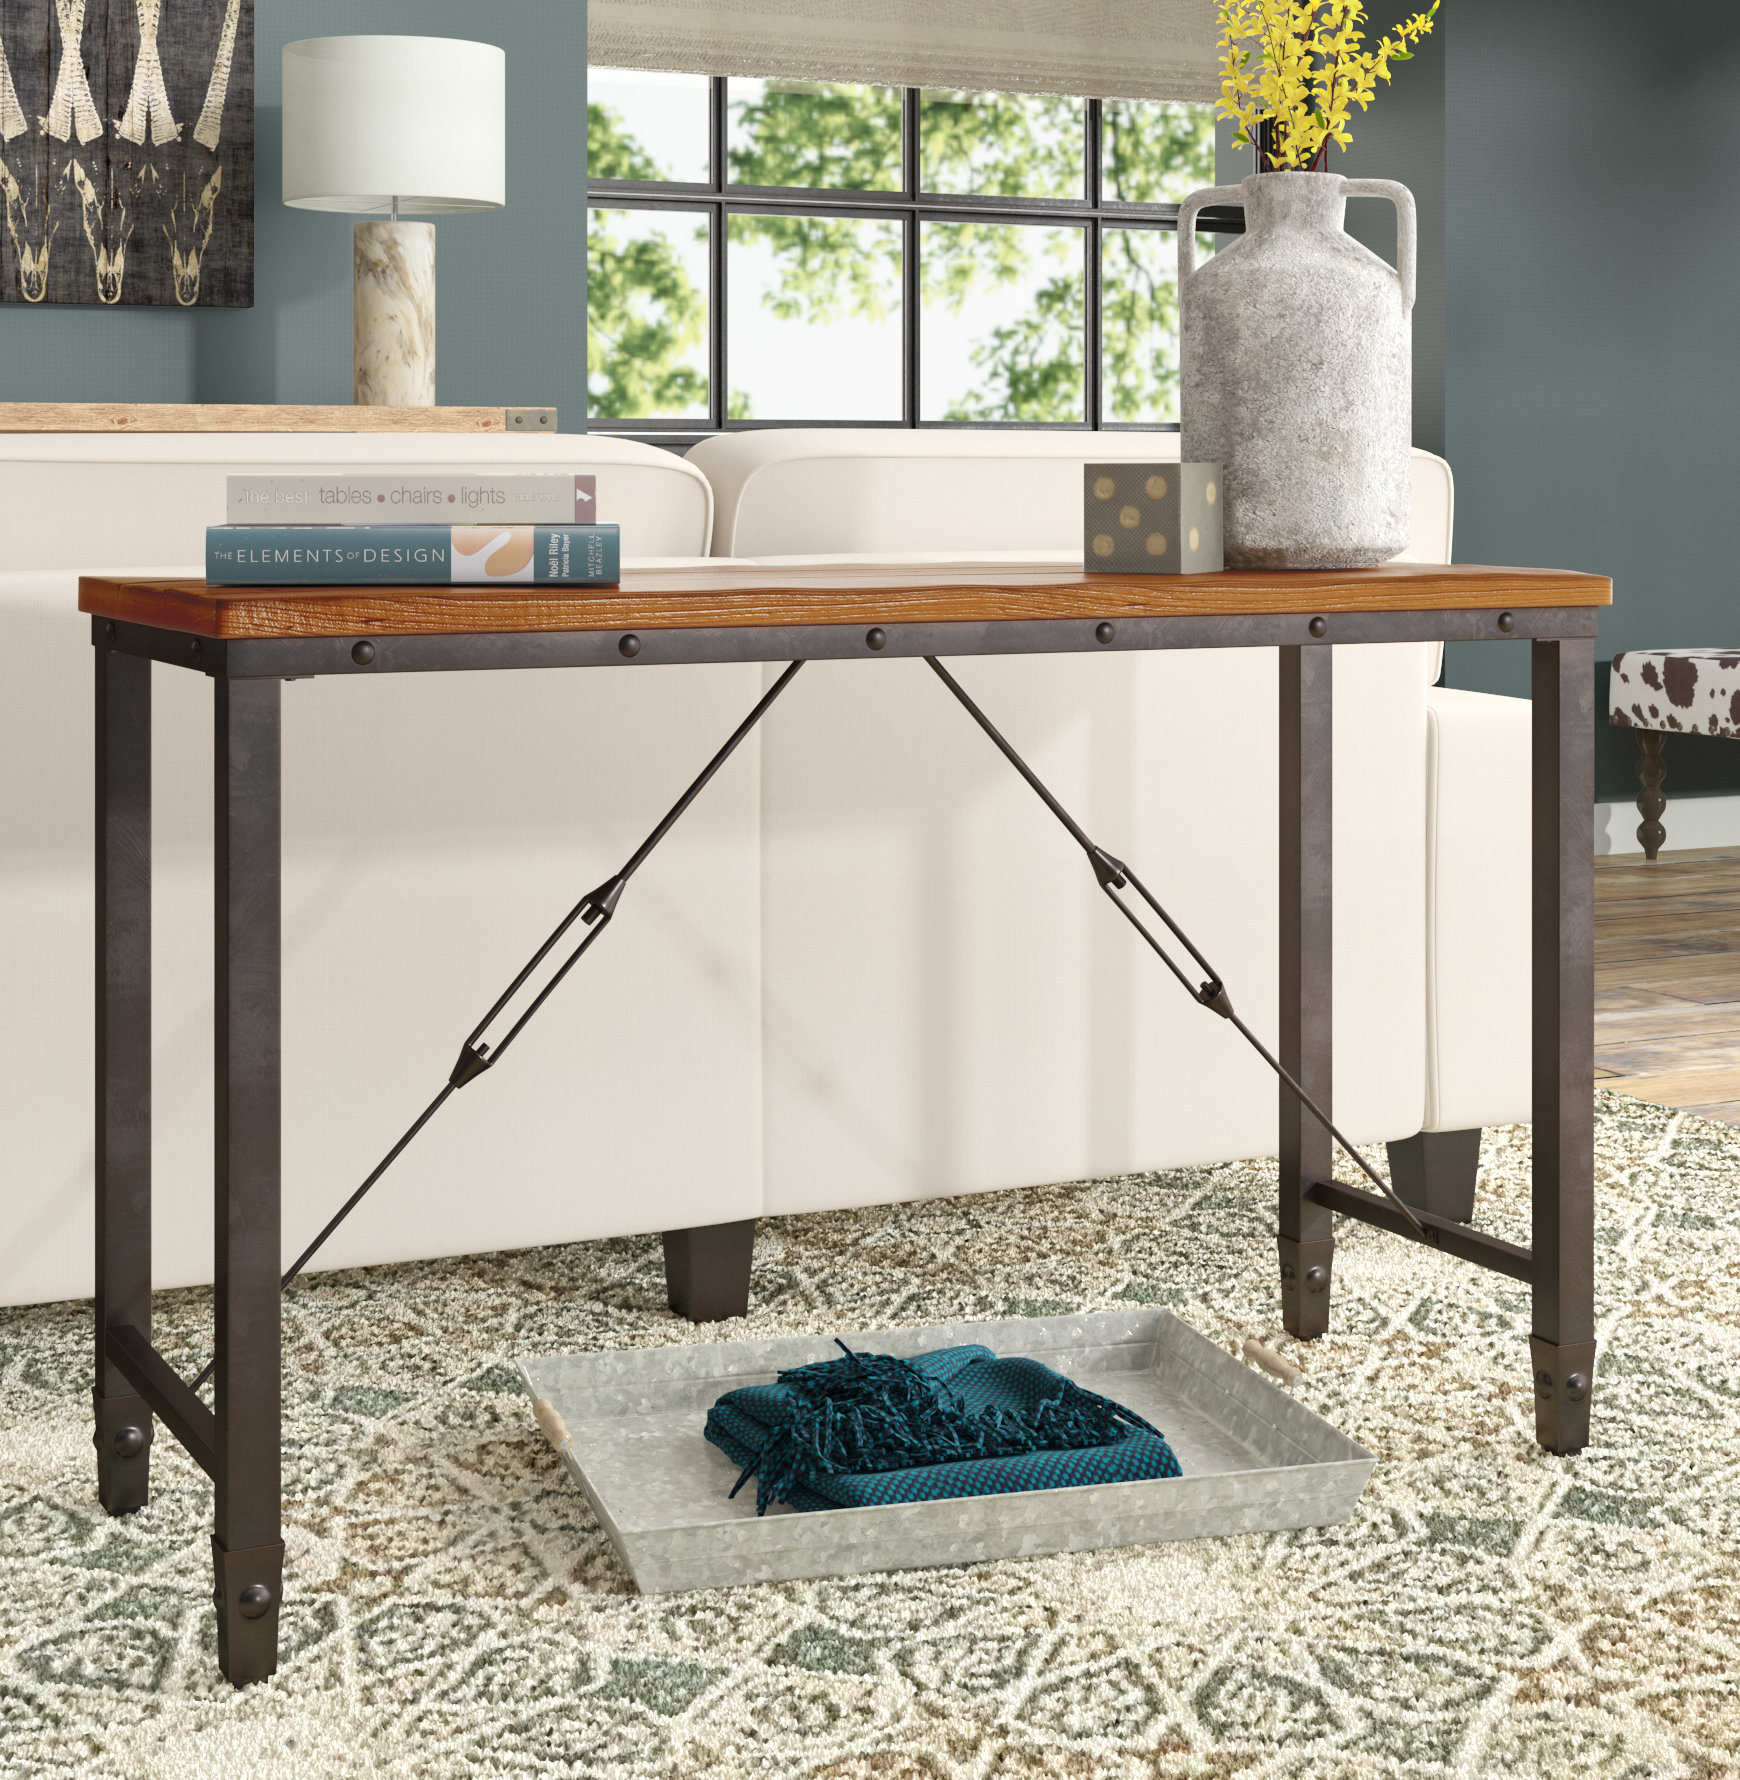 Industrial Console Tables You'll Love | Wayfair Inside Mix Patina Metal Frame Console Tables (View 7 of 30)